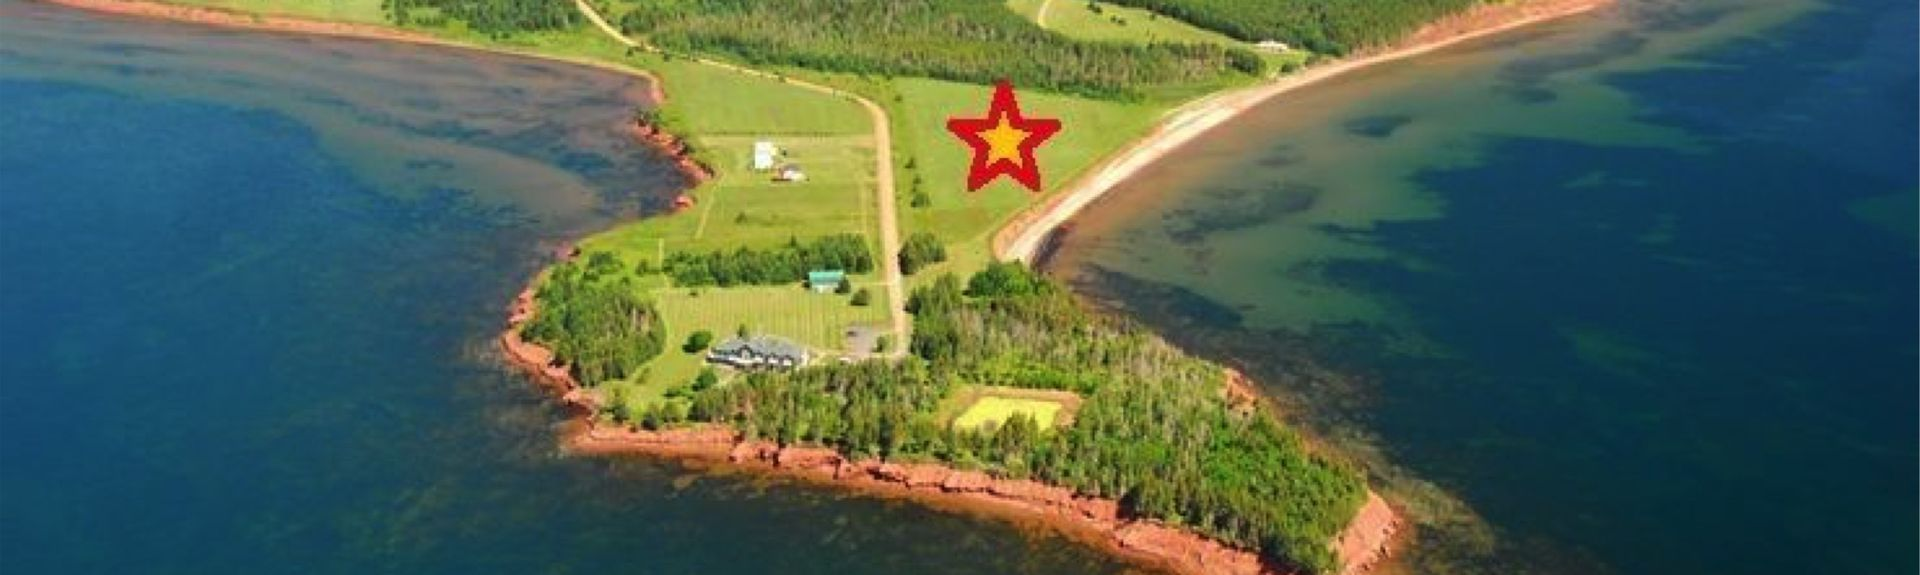 Roma at Three Rivers National Historic Site, Montague, Prince Edward Island, Canada